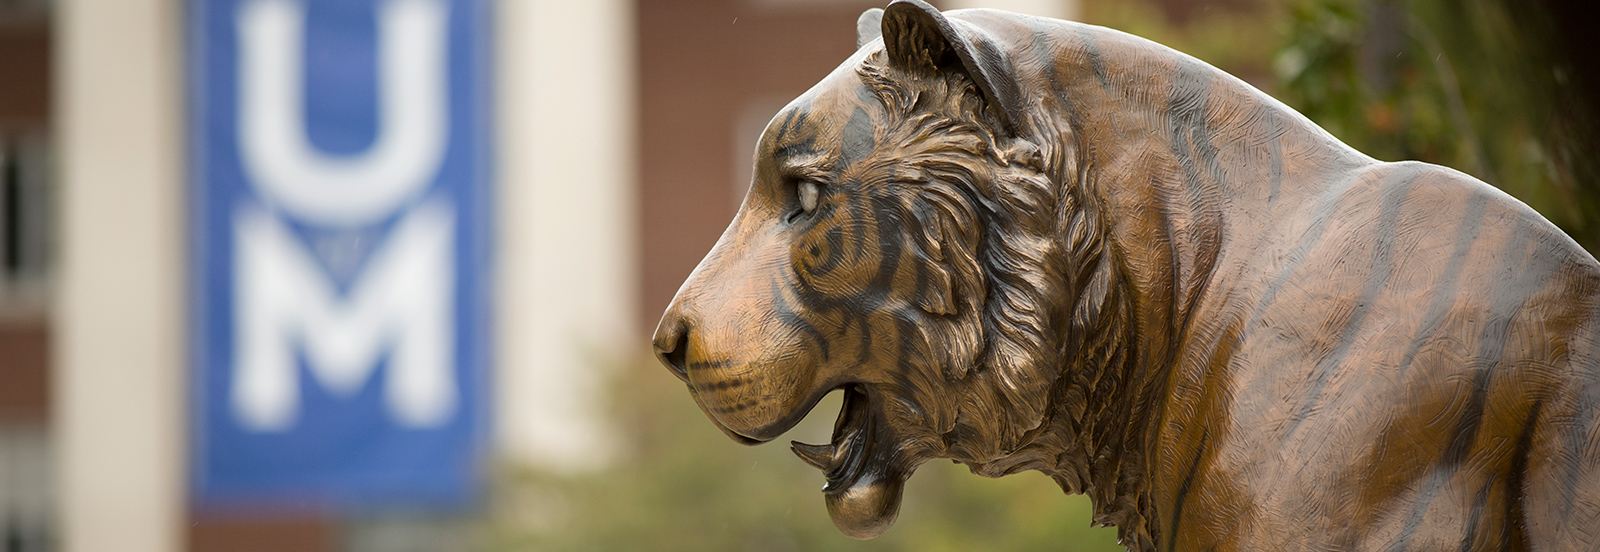 Bronze Tiger in front of Admin Pillar Logo Banner